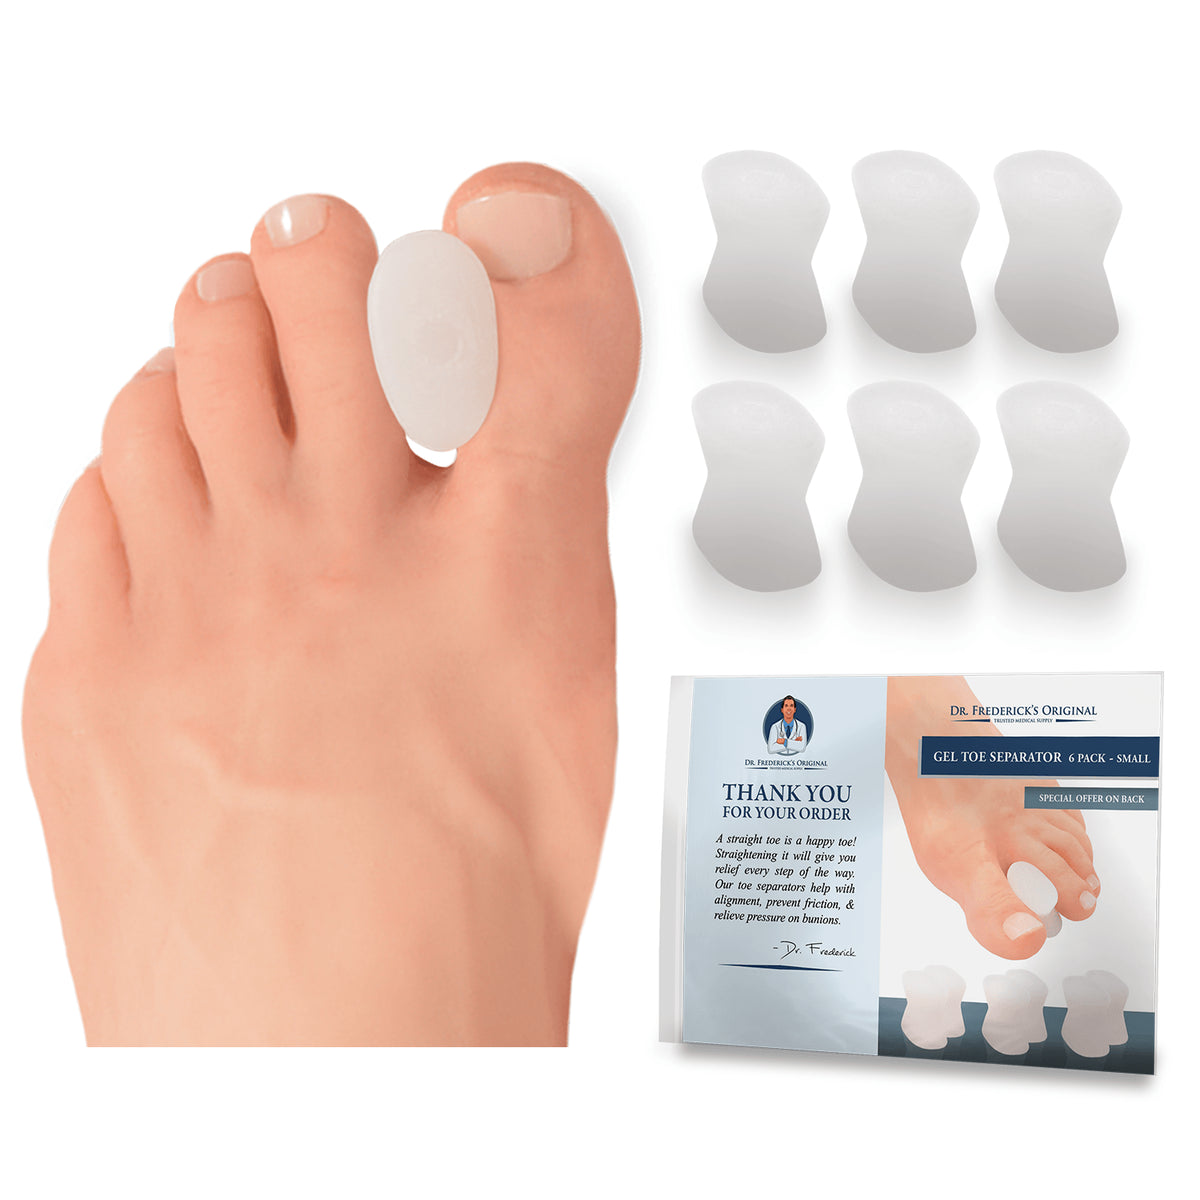 Dr. Frederick's Original Gel Toe Separators -- 6 Pieces - for Bunions and Overlapping Toes Foot Pain Dr. Frederick's Original